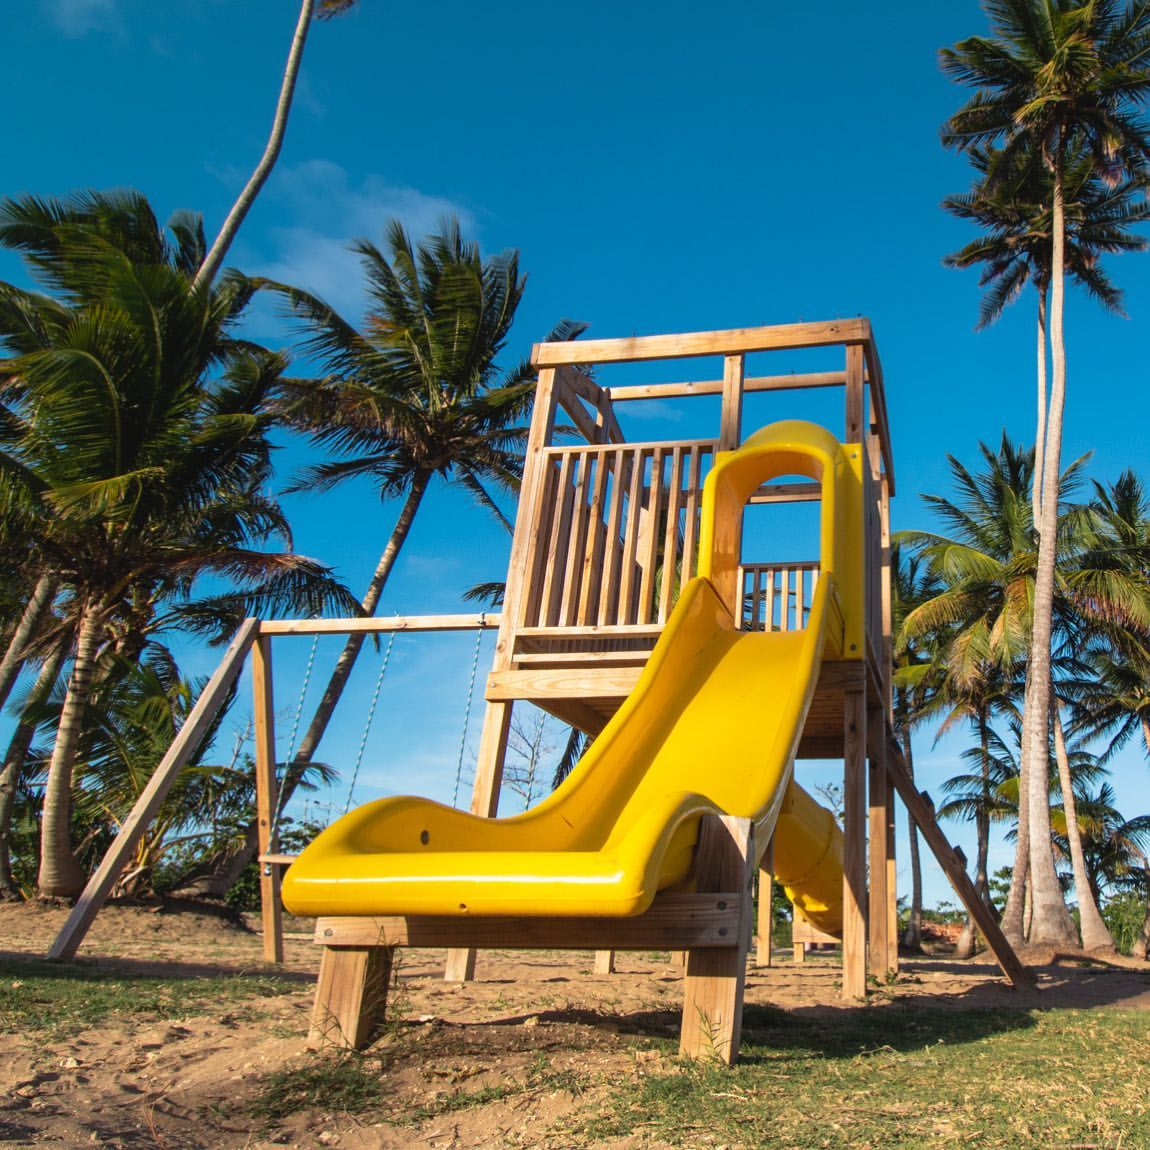 The playground area has modern equipment and a sand floor for the children's safety.